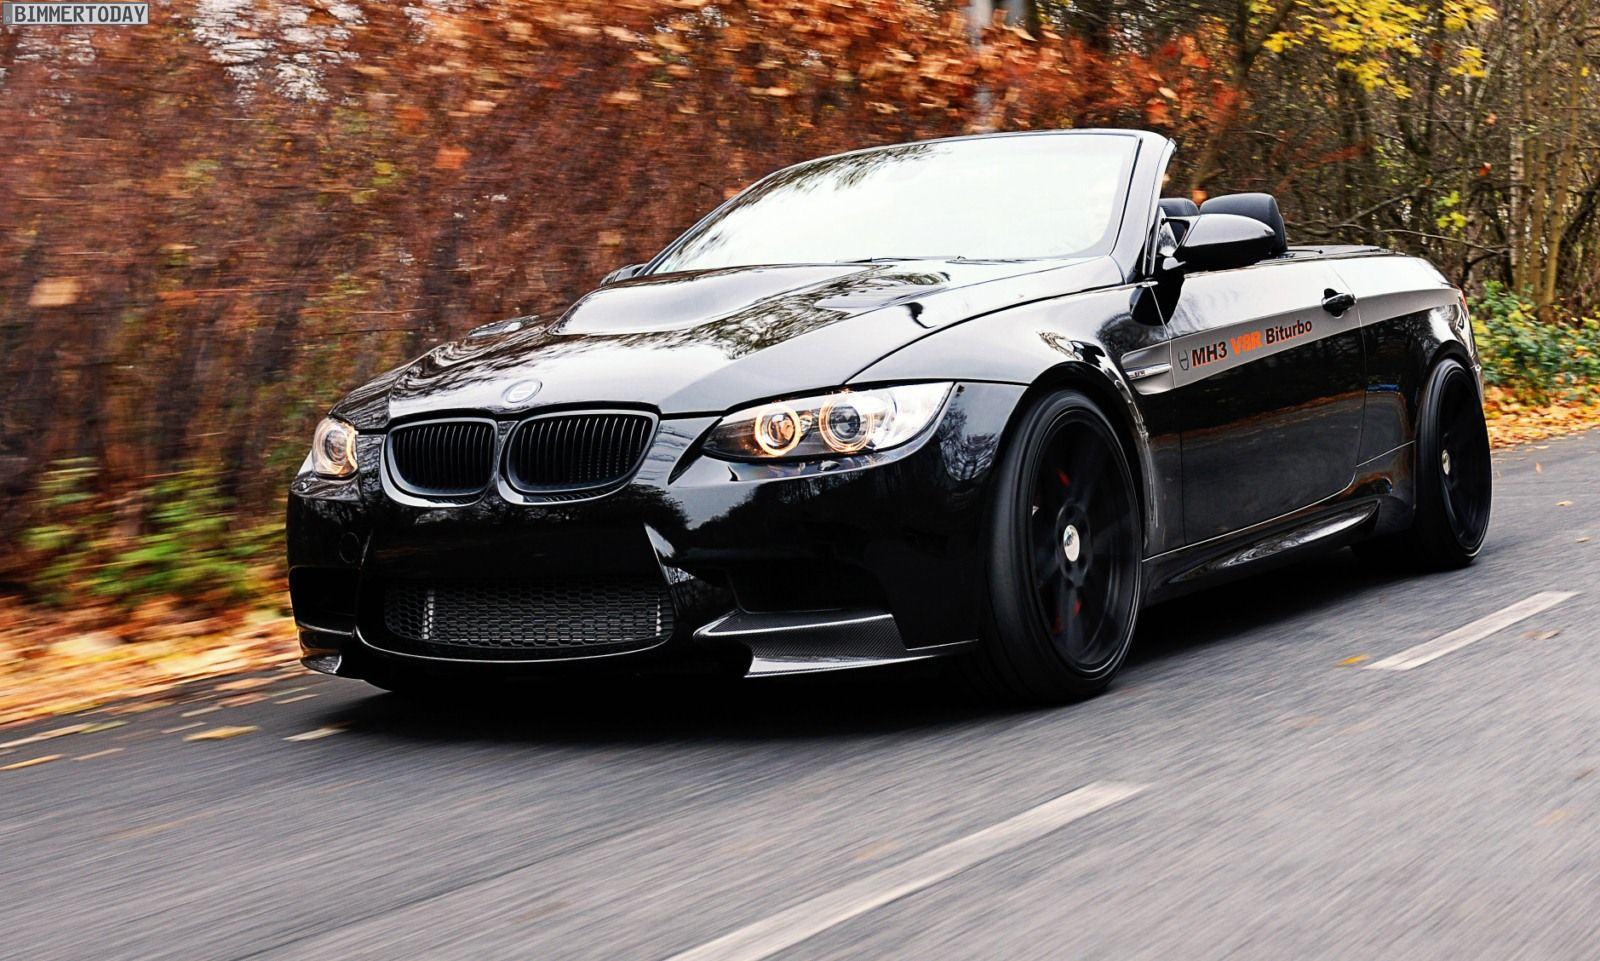 Manhart Bmw M3 E92 Mh3 V8 R Biturbo Convertible Produces 655